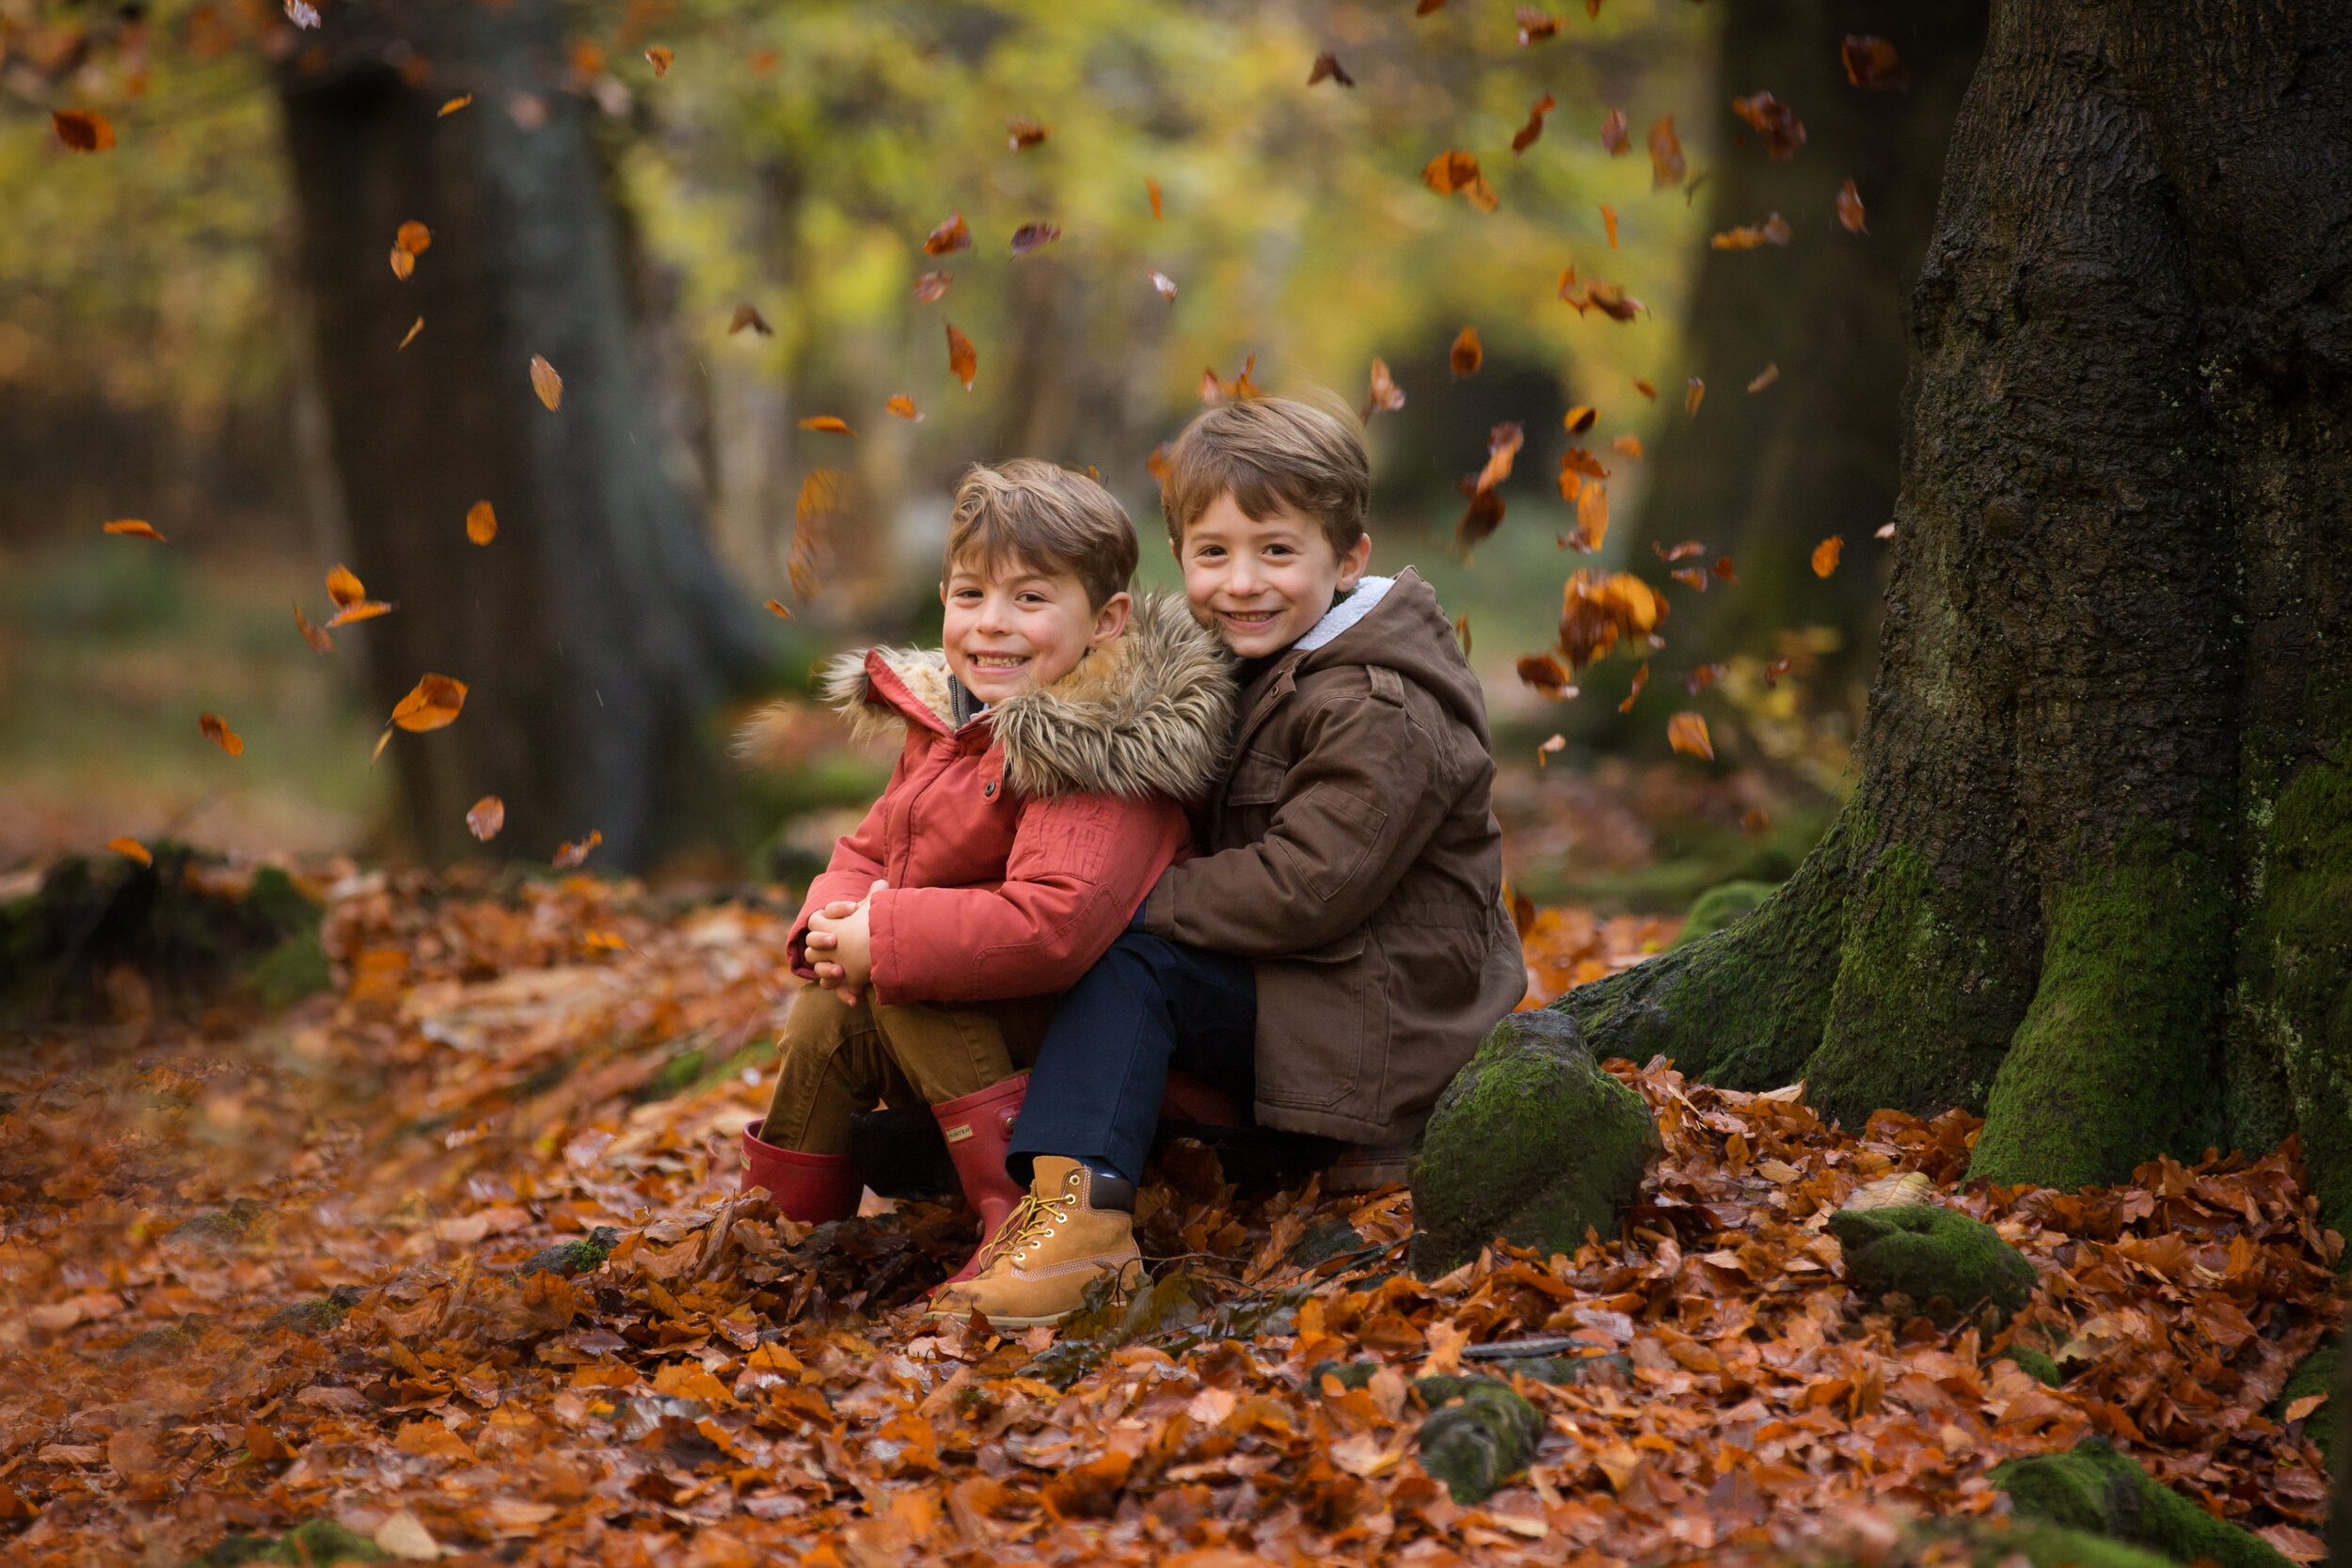 Blog: Autumn shoots are coming!